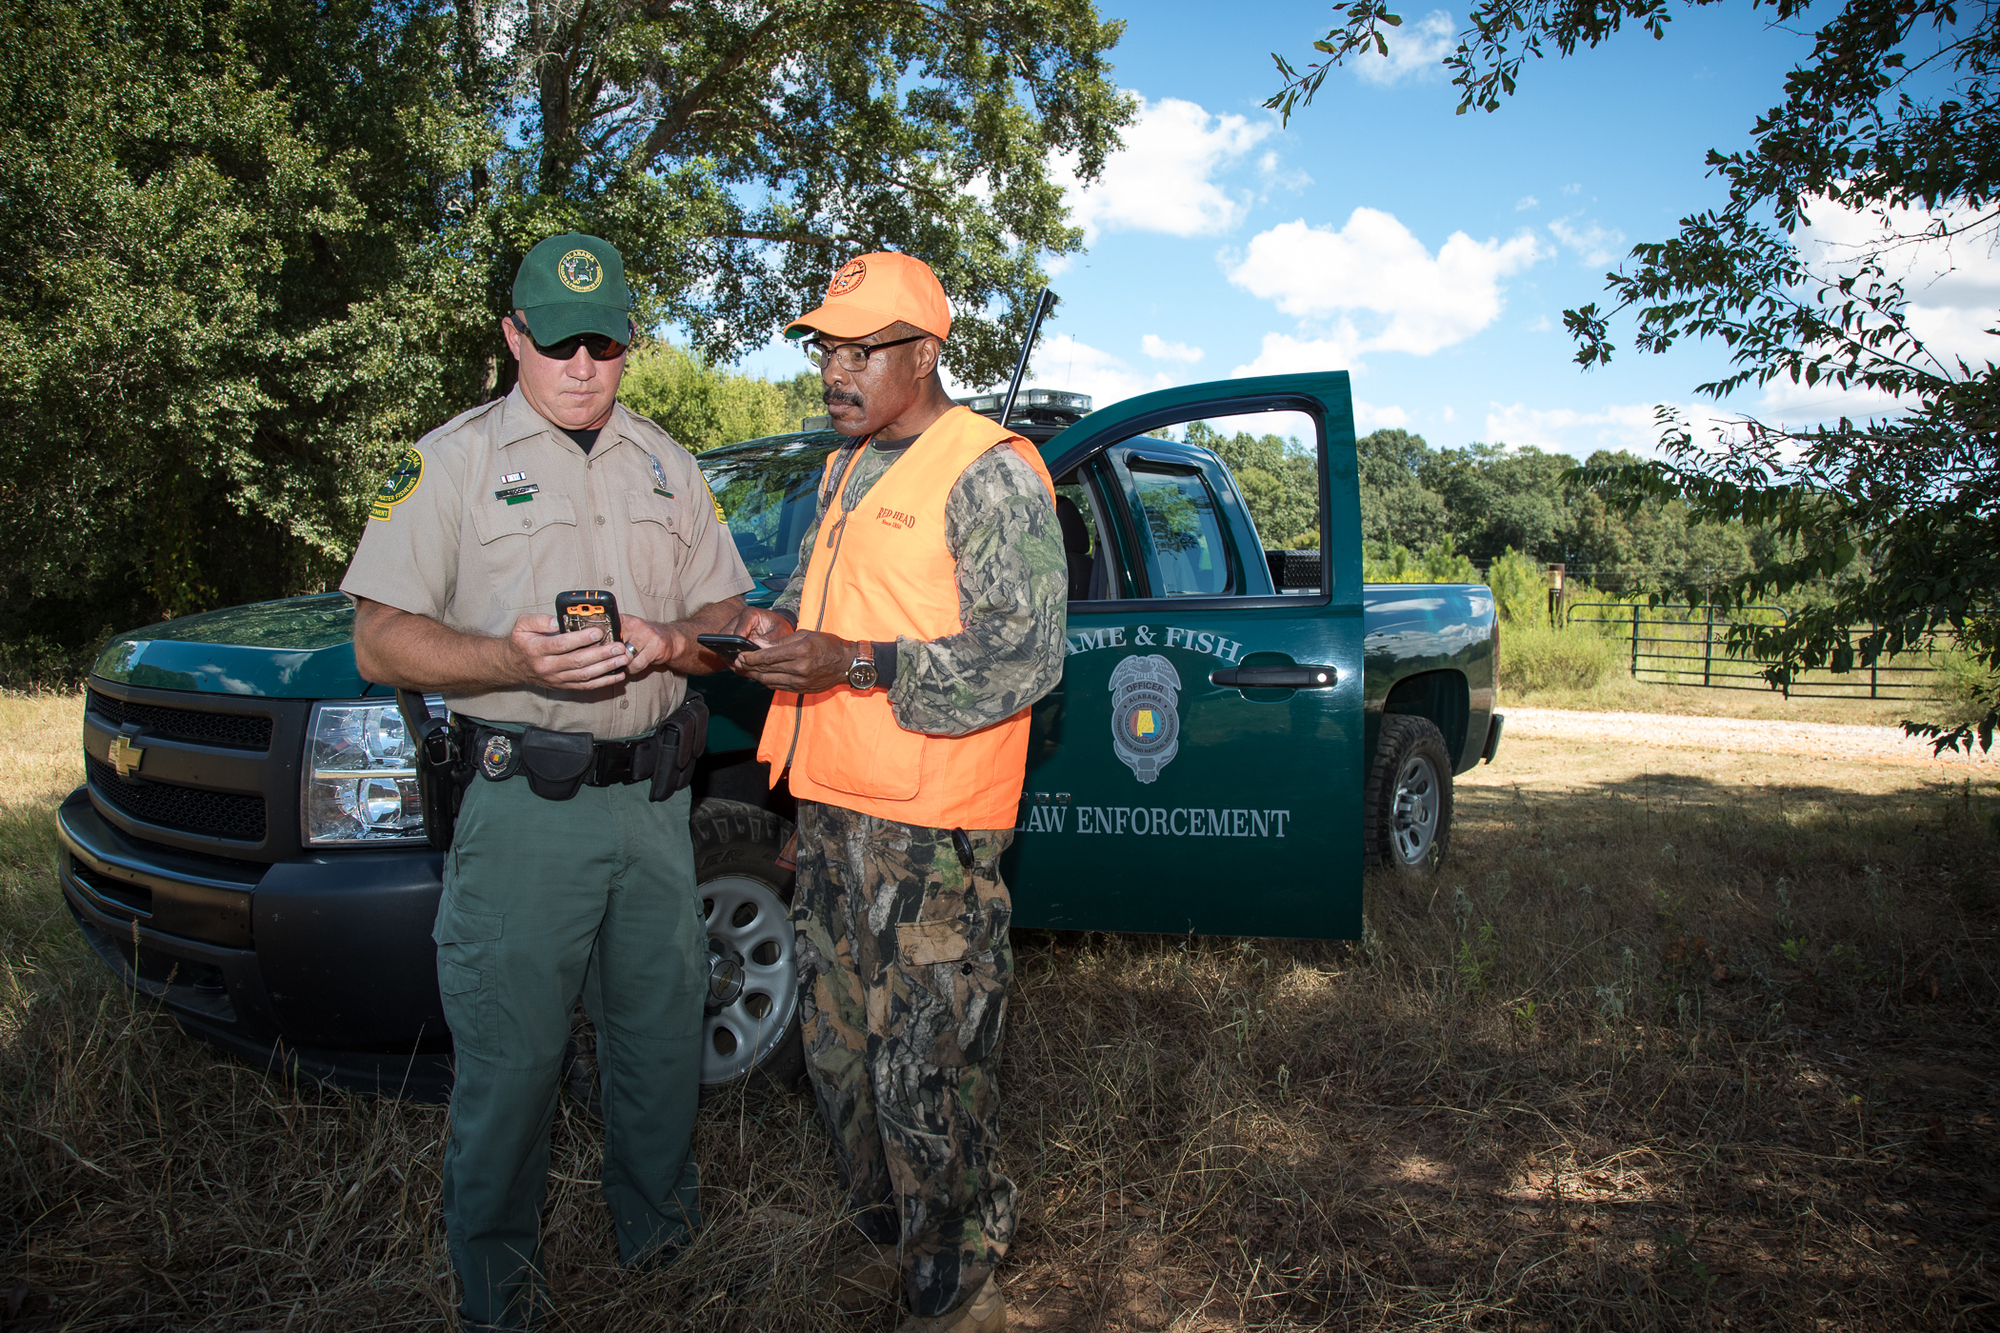 Five Questions You Probably Have About Conservation Officers